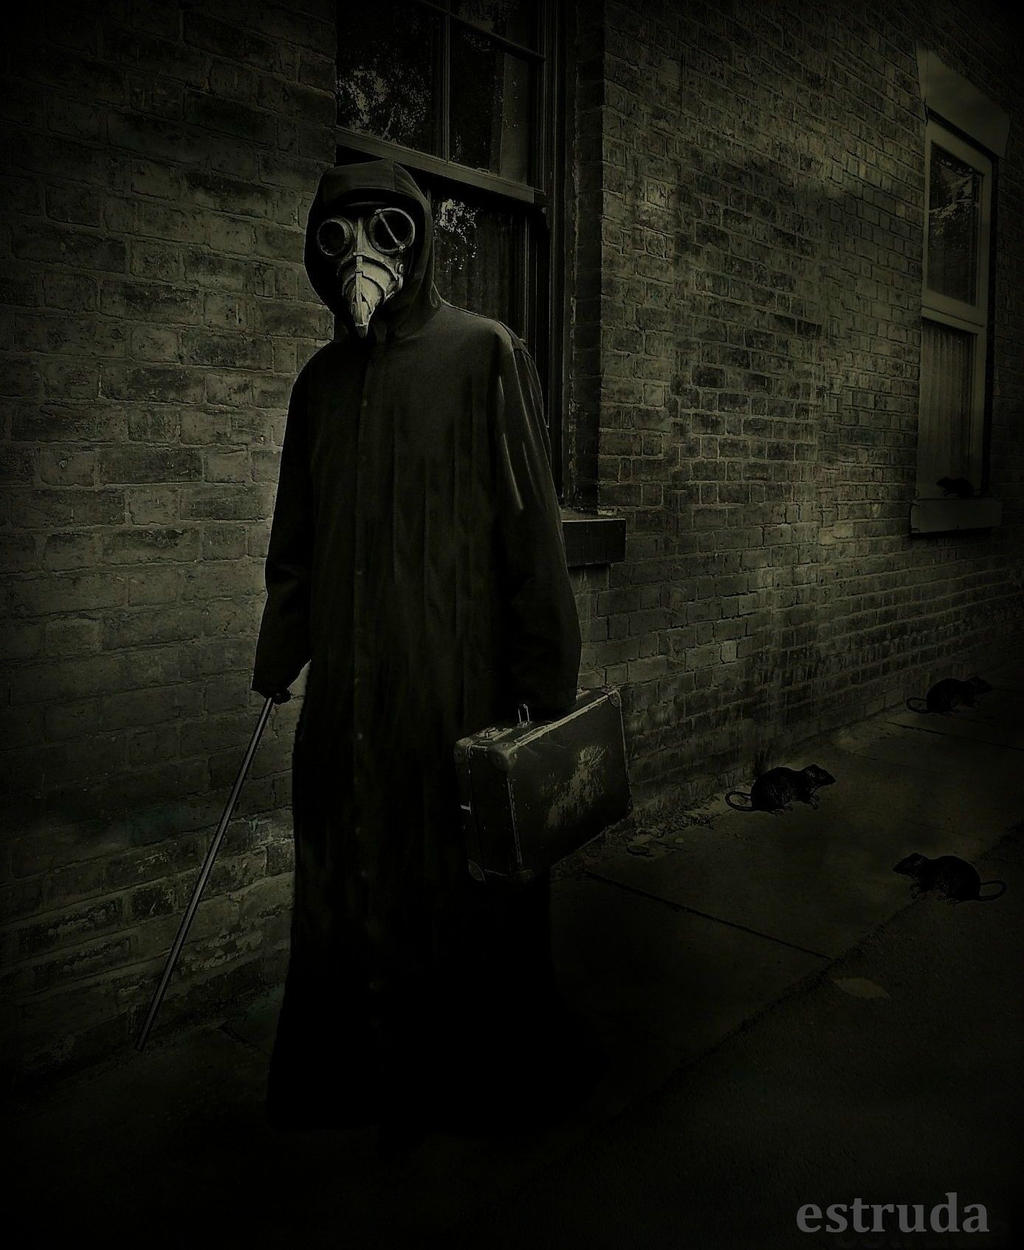 The Plague Doctor On Duty by Estruda